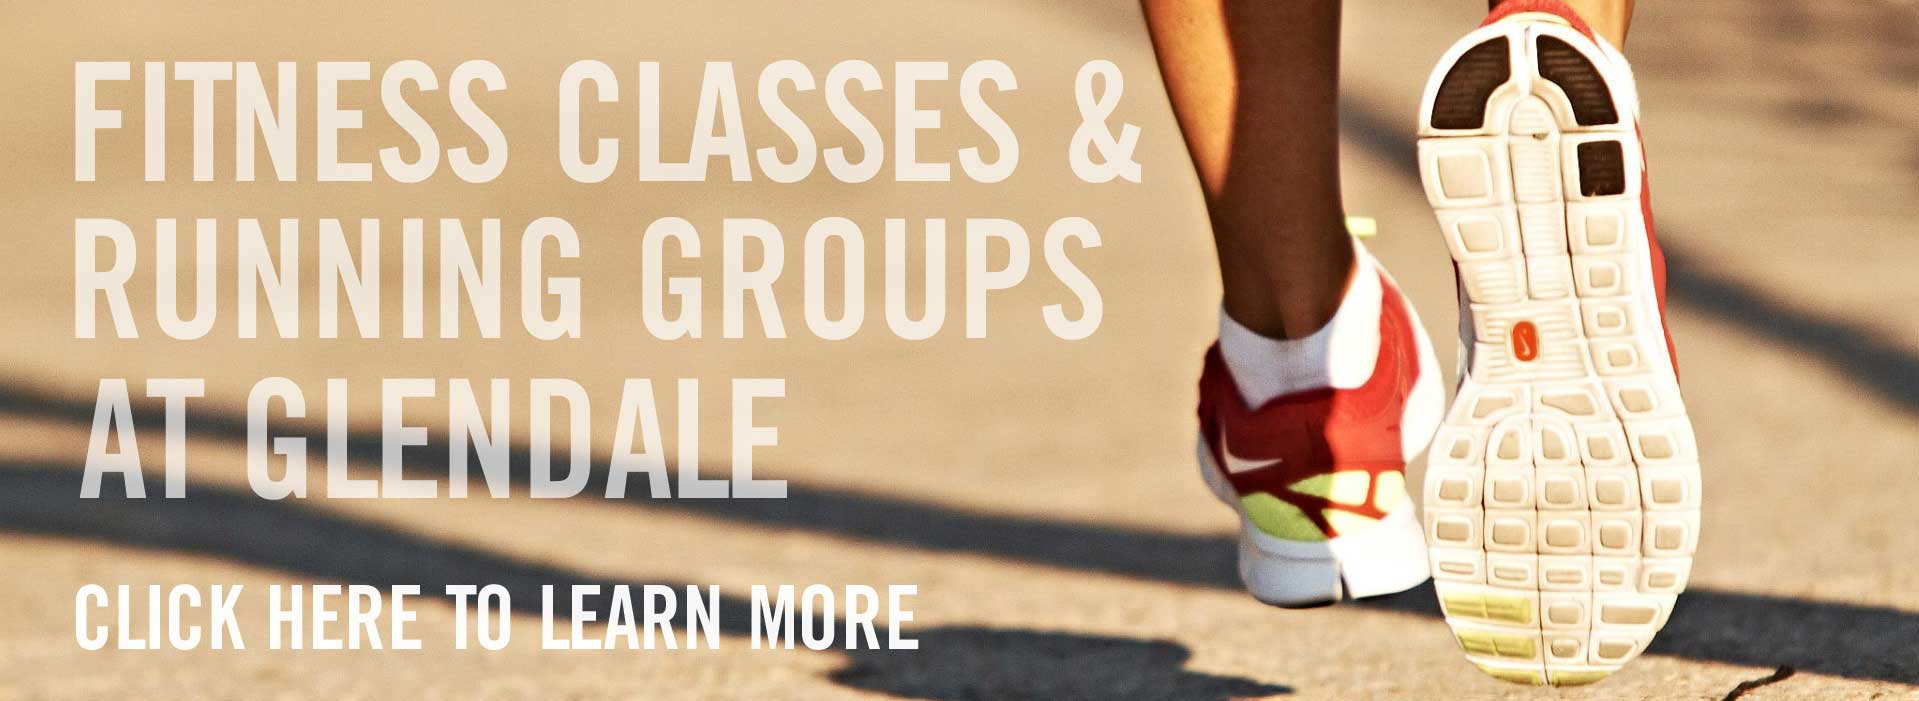 Fitness Classes and Running Groups at Glendale United Methodist Church in Nashville TN